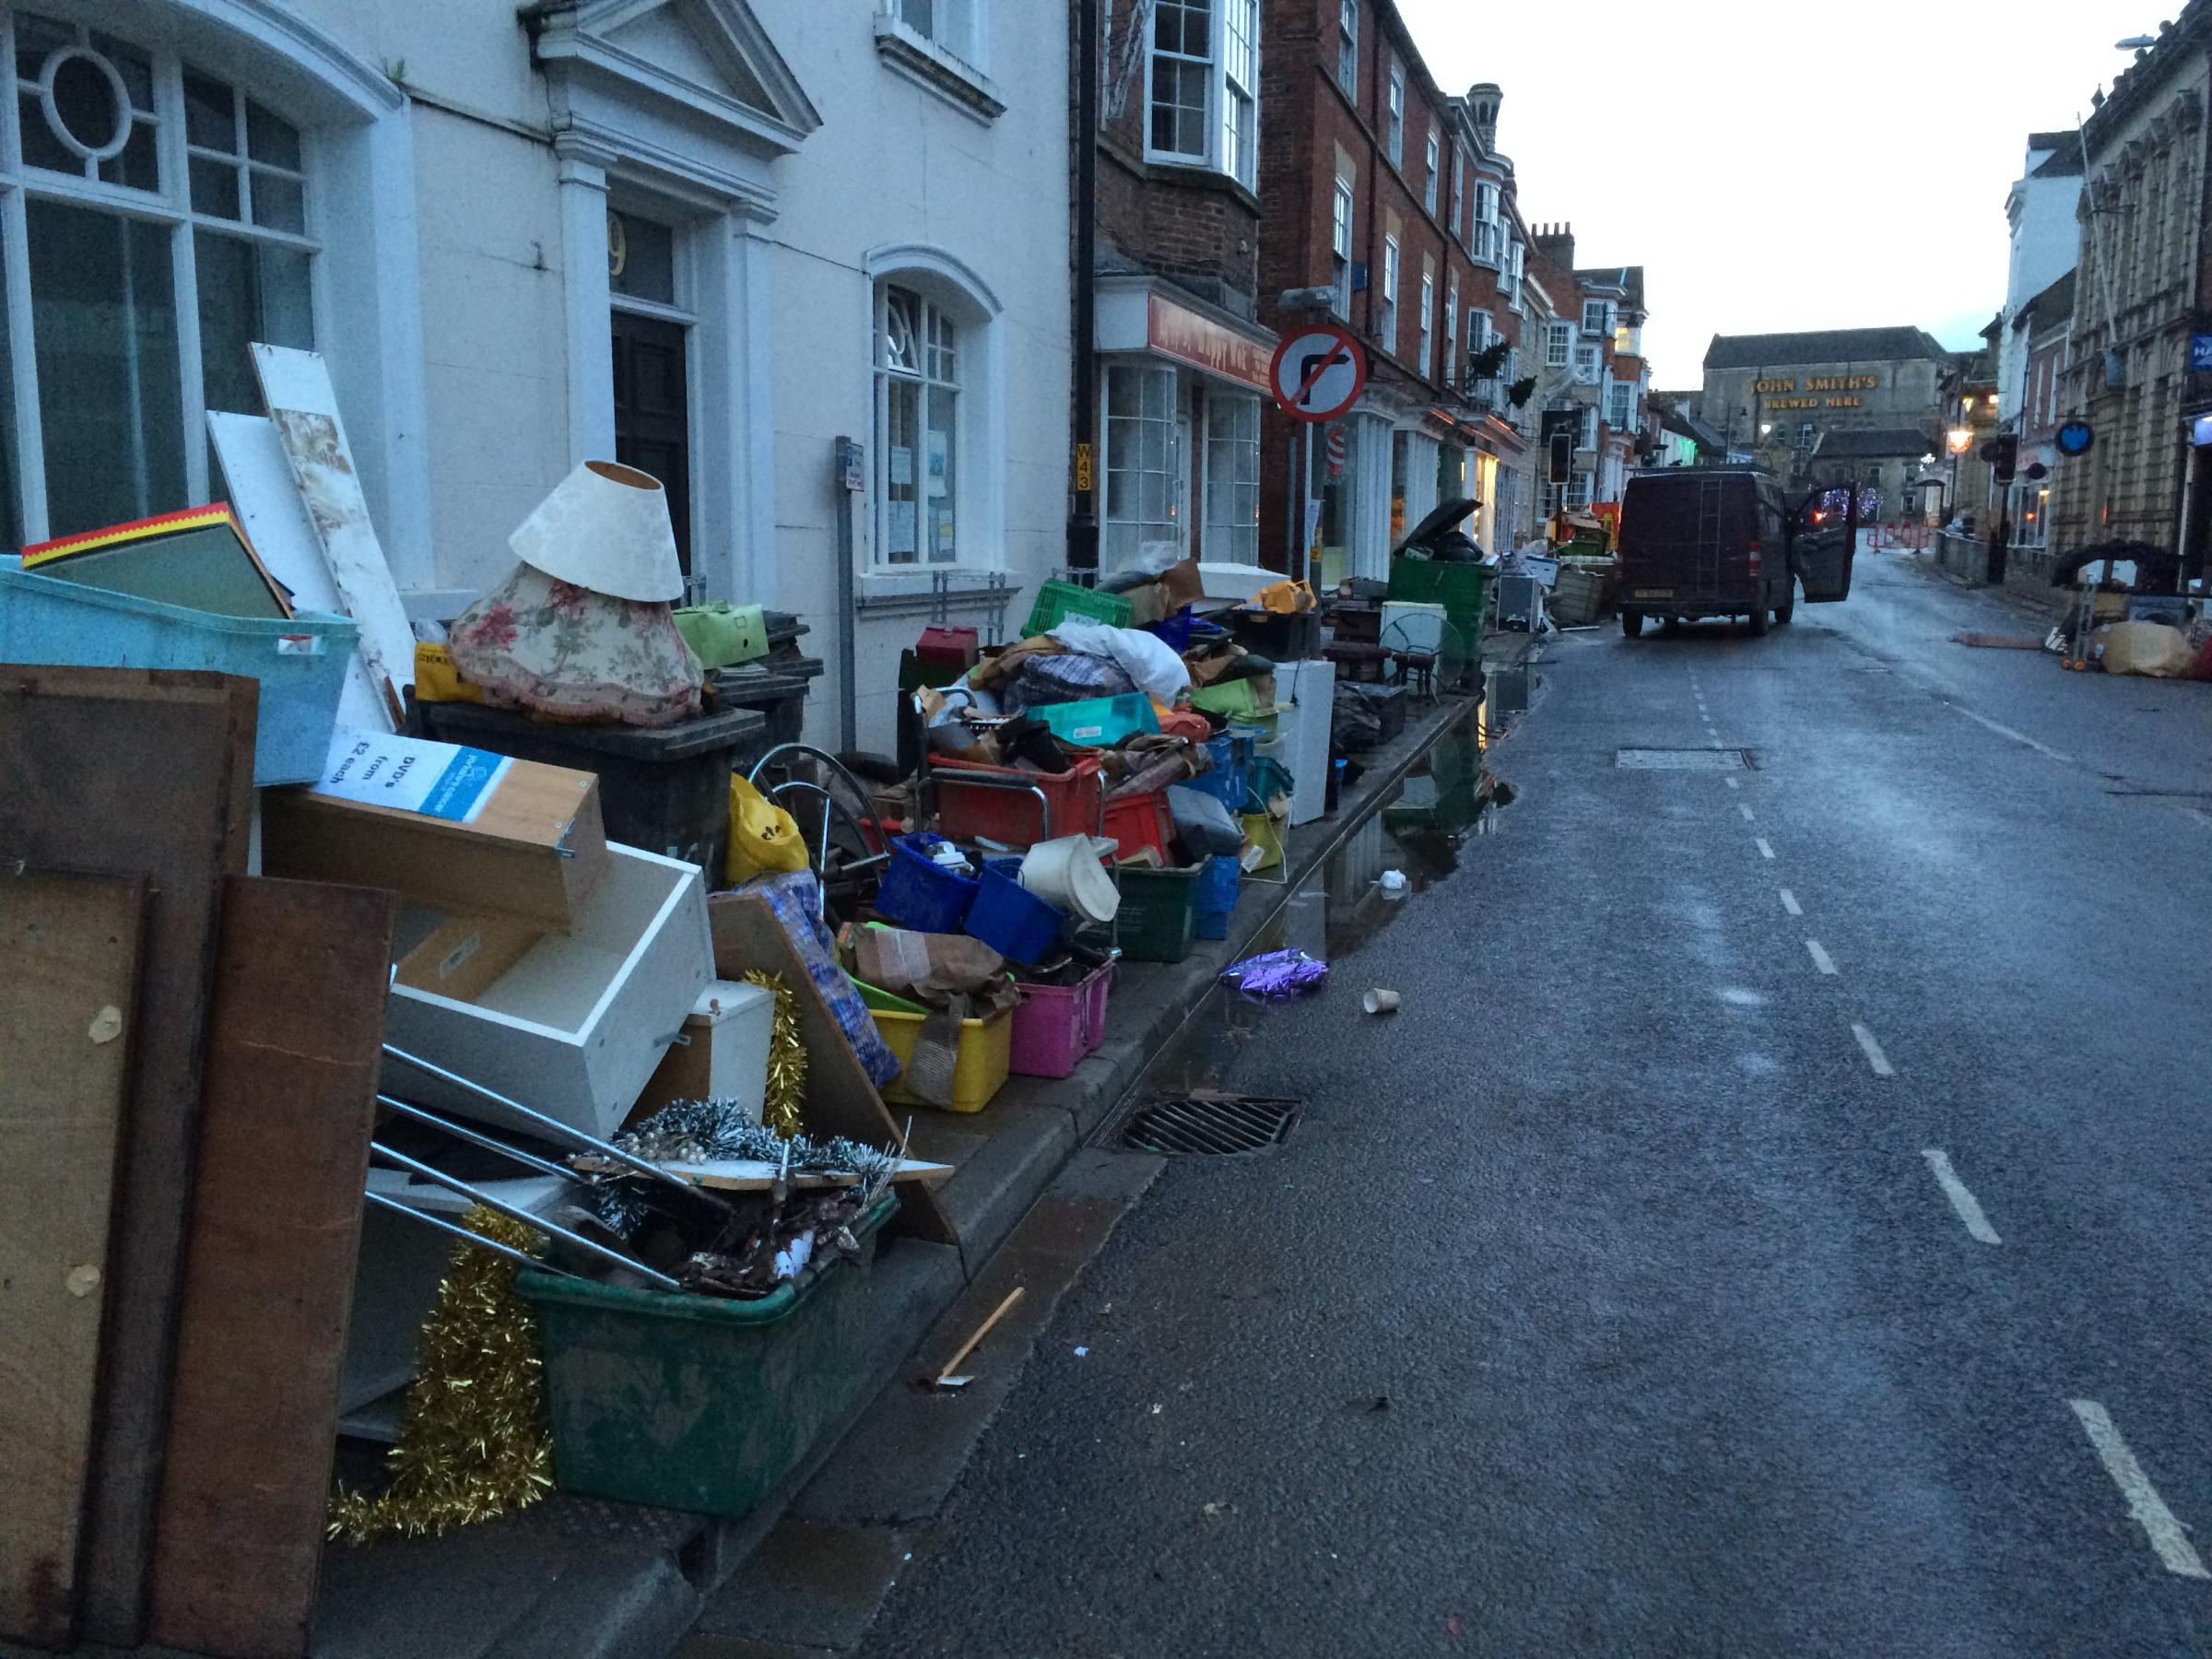 This was the scene in Tadcaster after the December 2015 floods when water-damaged belongings lined the streets. Picture: Dan Bean